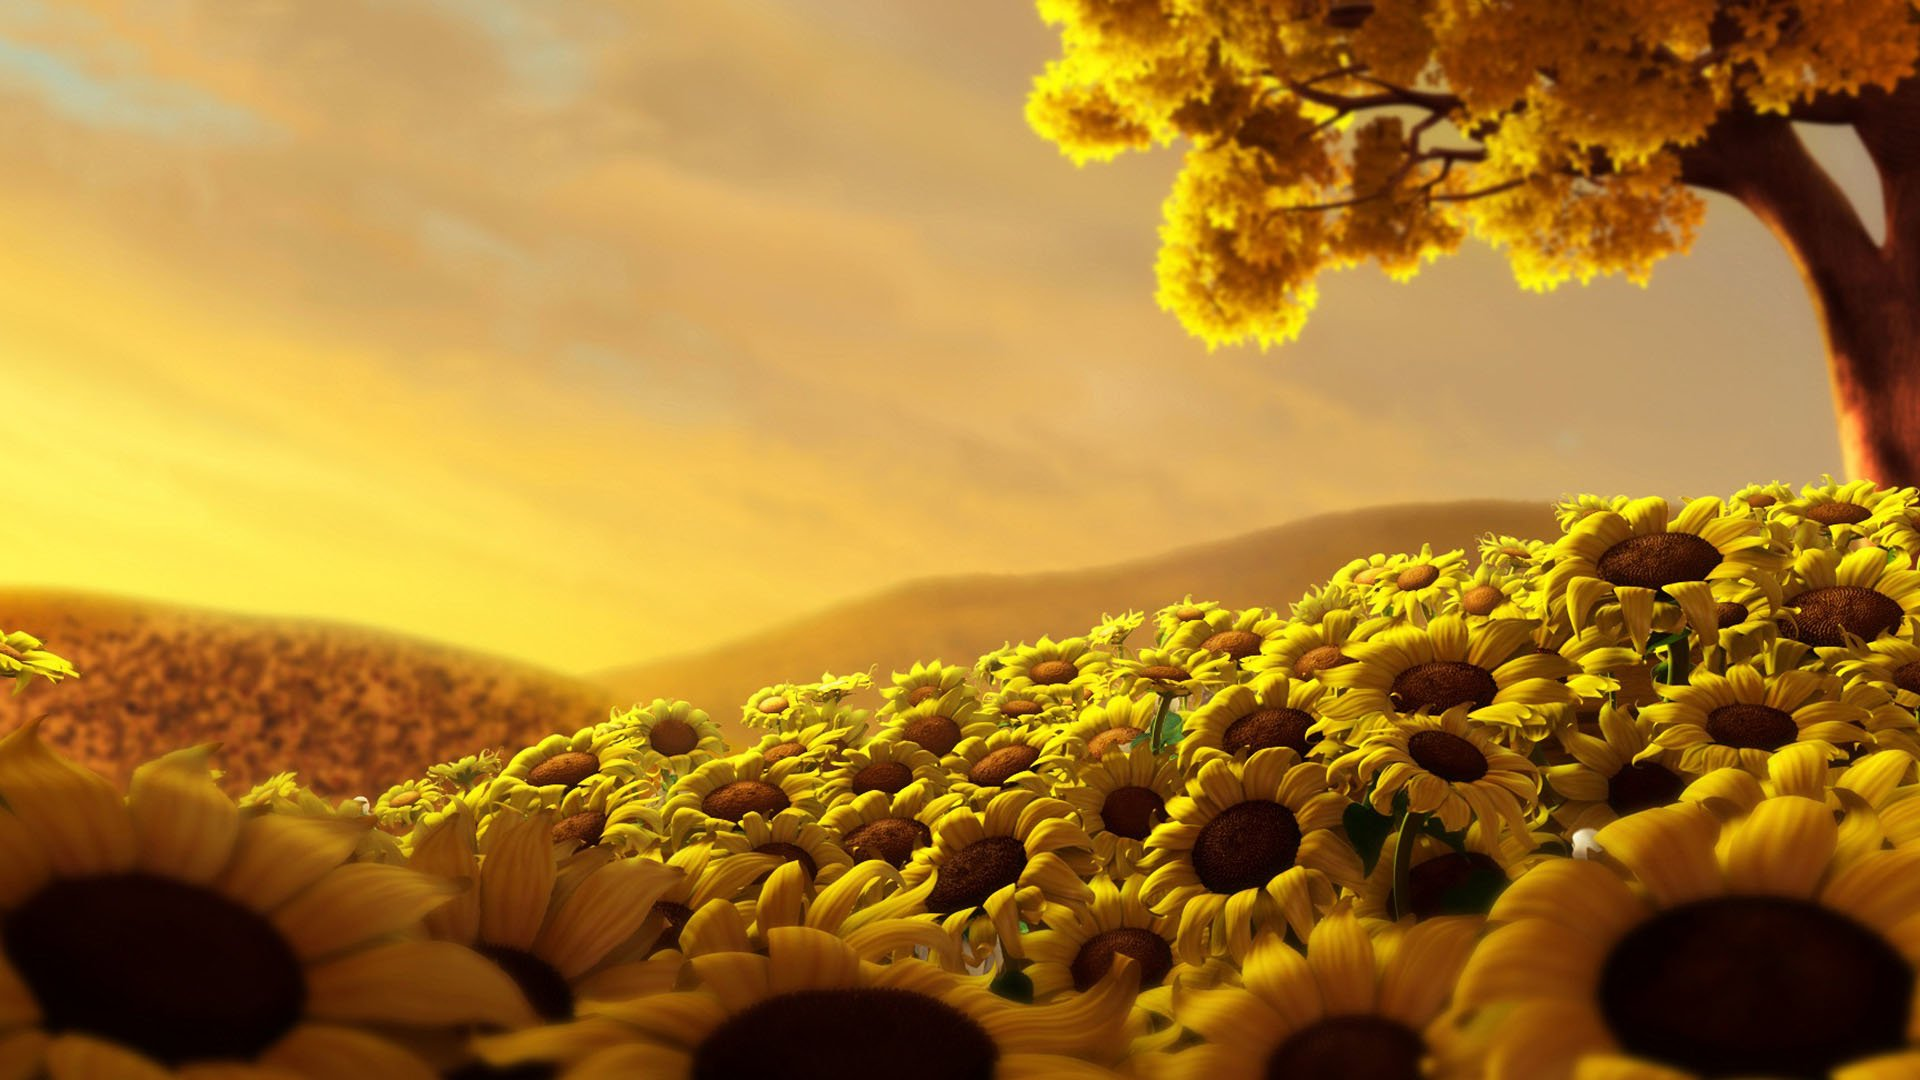 HD Wallpaper | Background Image ID:443239. 1920x1080 Earth Sunflower